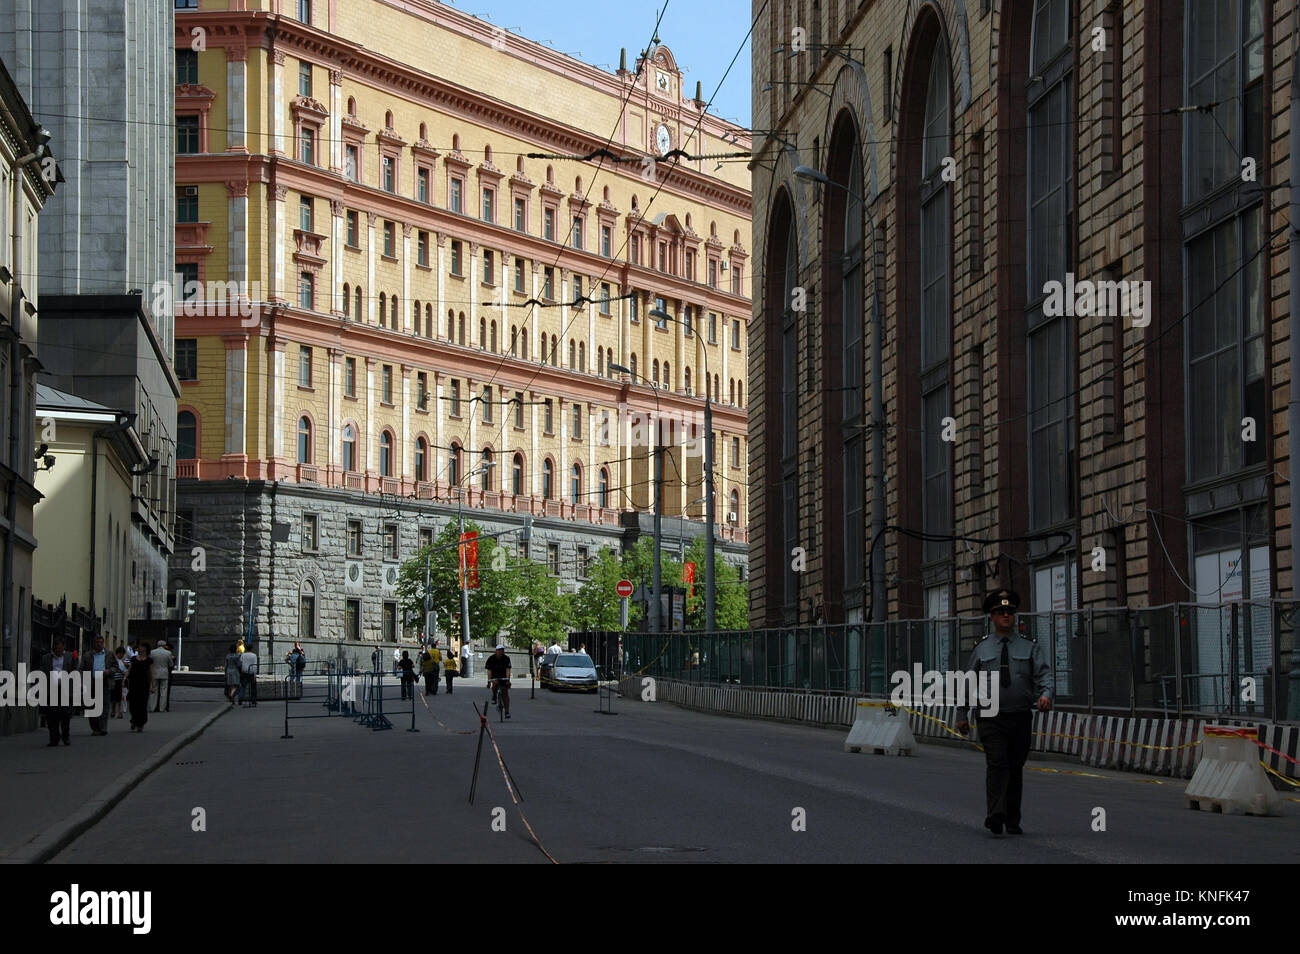 In Moscow, the Loubianka was the building of the soviet repression security organs: Tcheka, NKVD, OGPU, KGB. - Stock Image